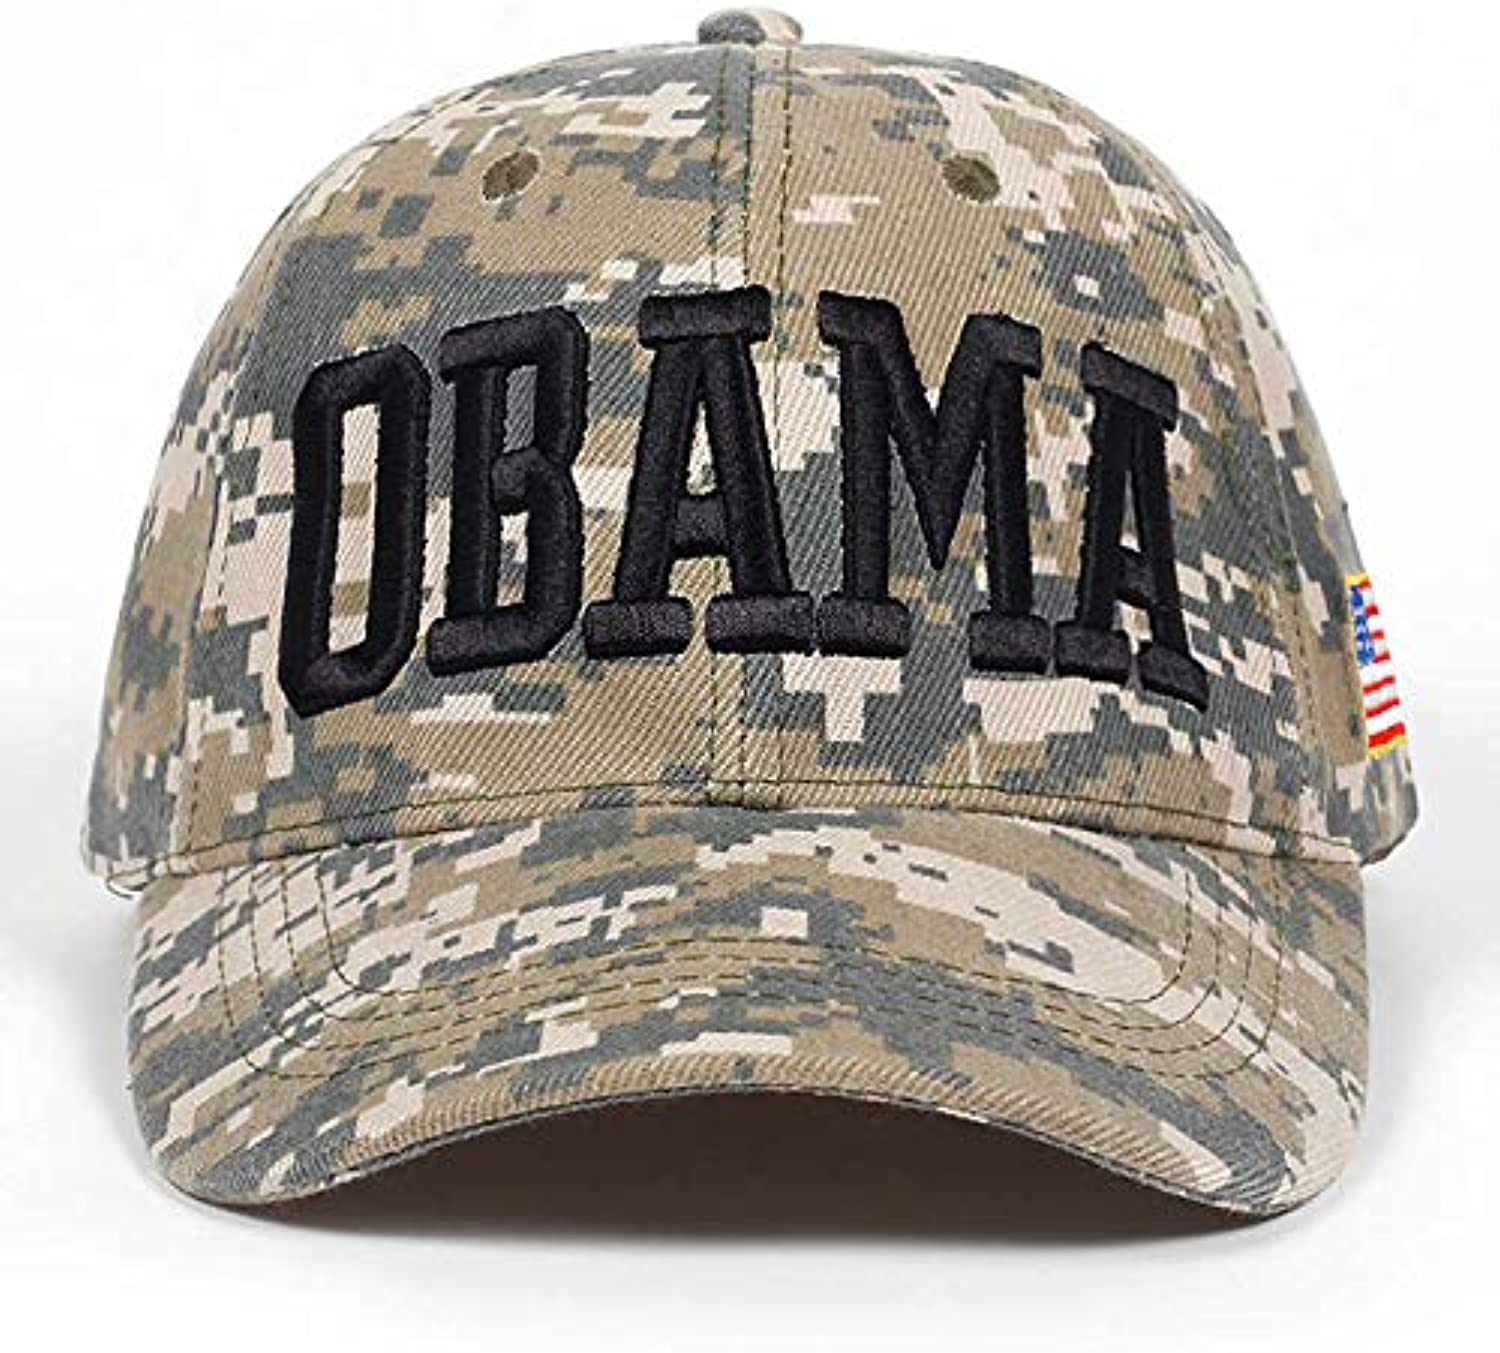 Chlally Fashion Men Caps Casual Camouflage Cotton Baseball Cap for Women Summer Snapback Hats